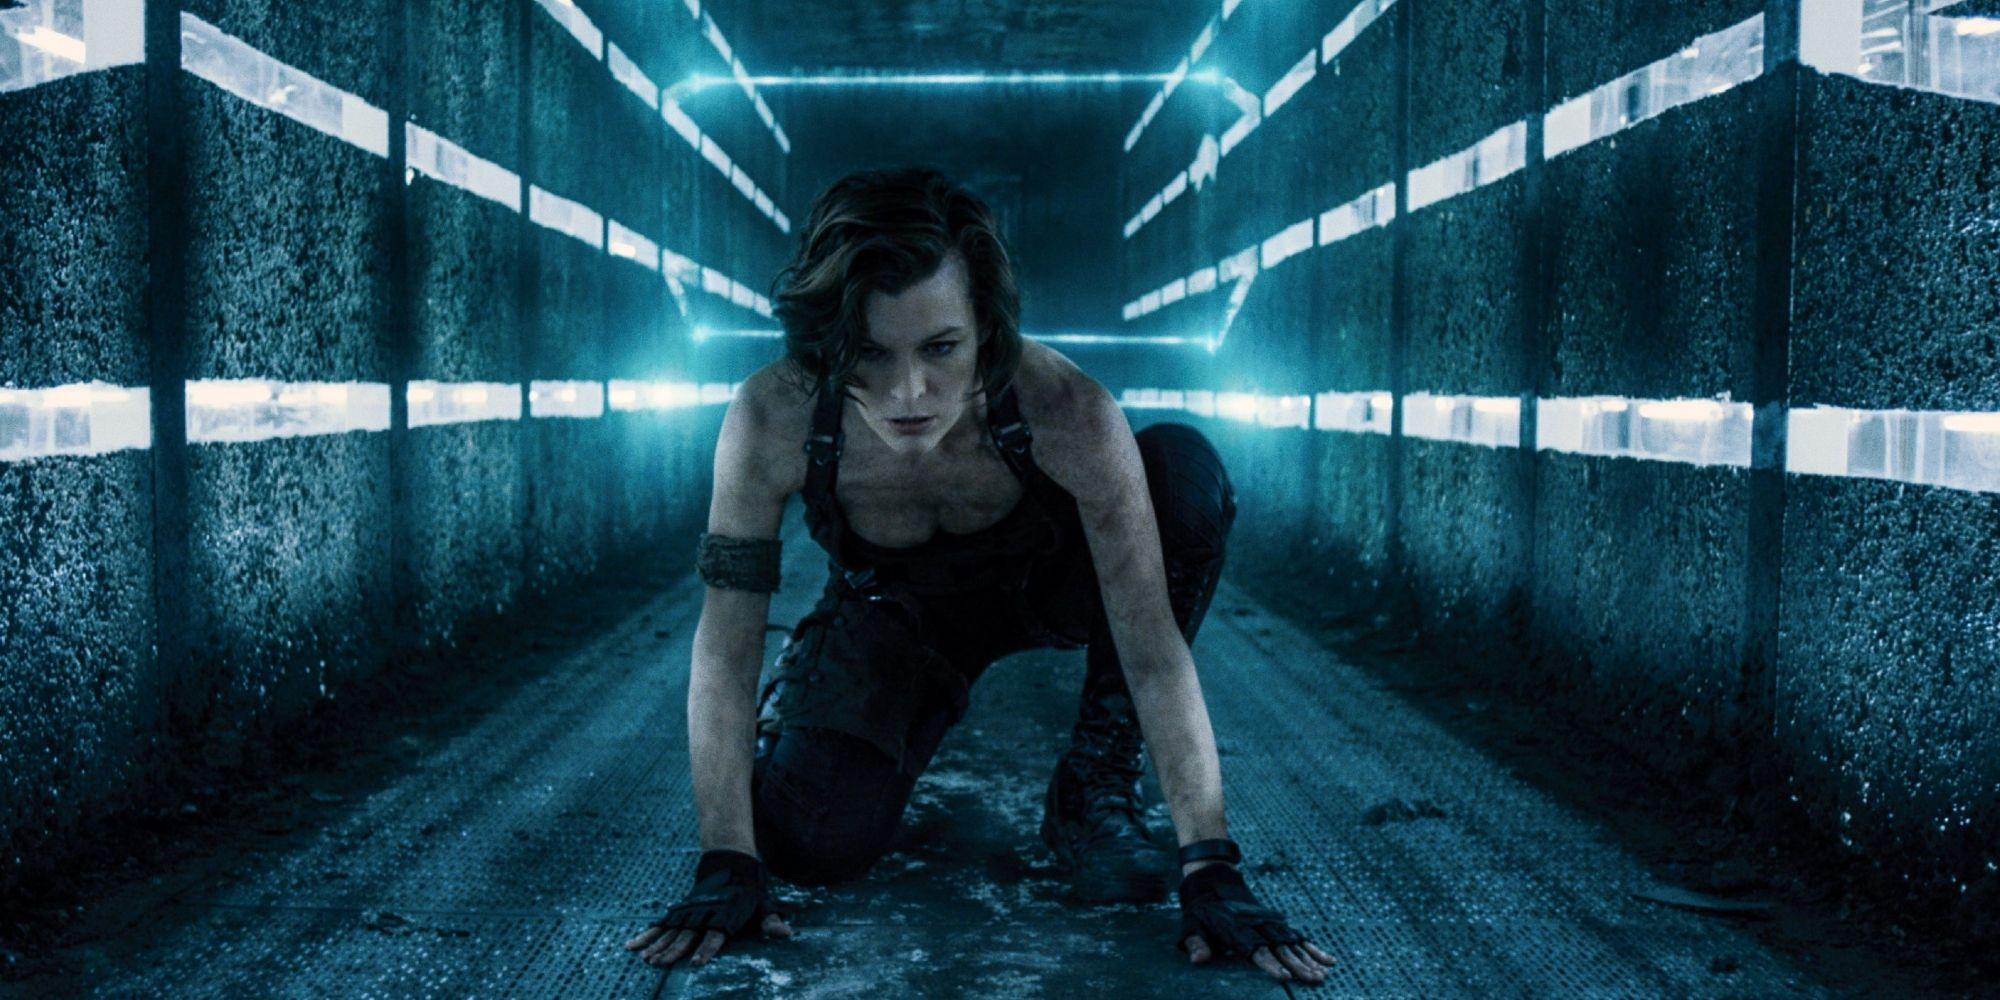 How Resident Evil The Final Chapter Broke Box Office Records